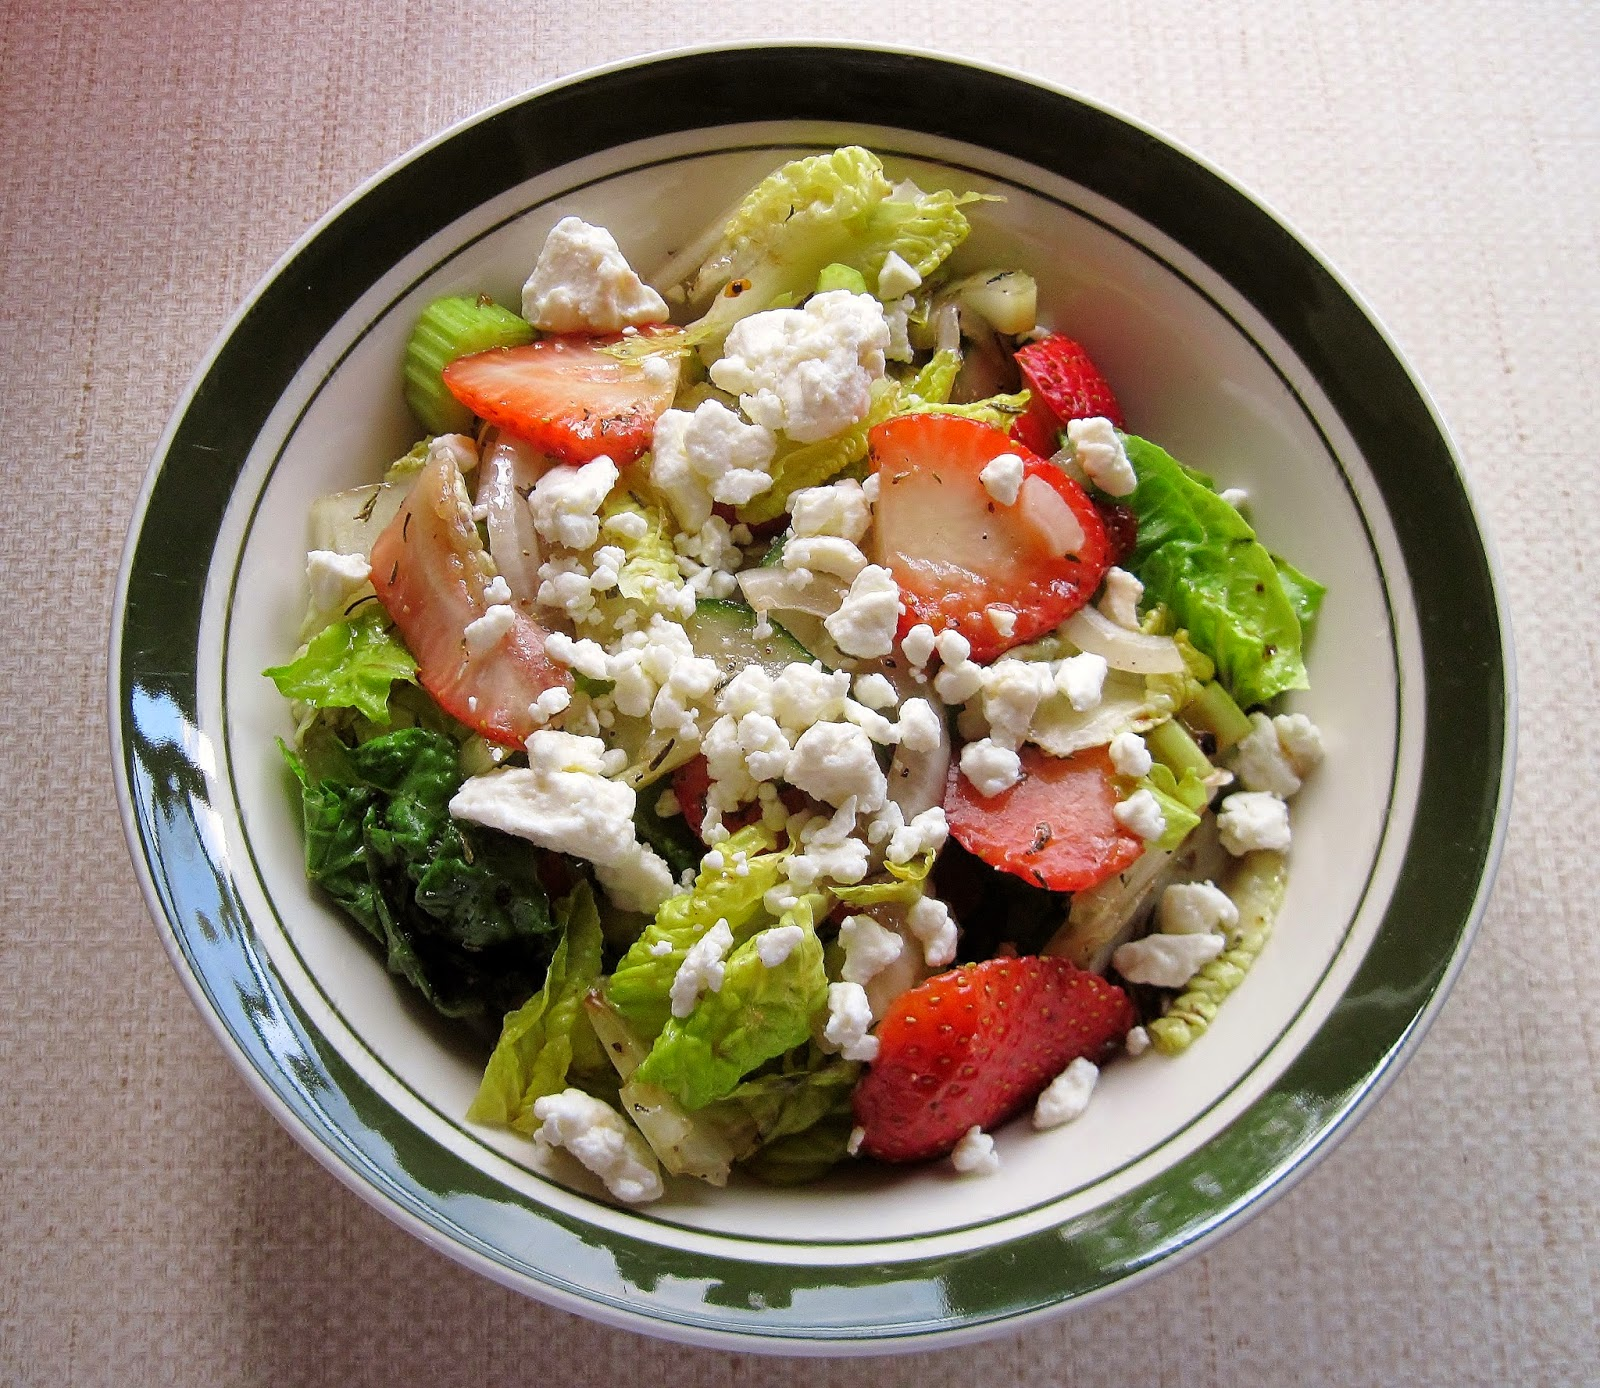 salad with strawberries & feta cheese